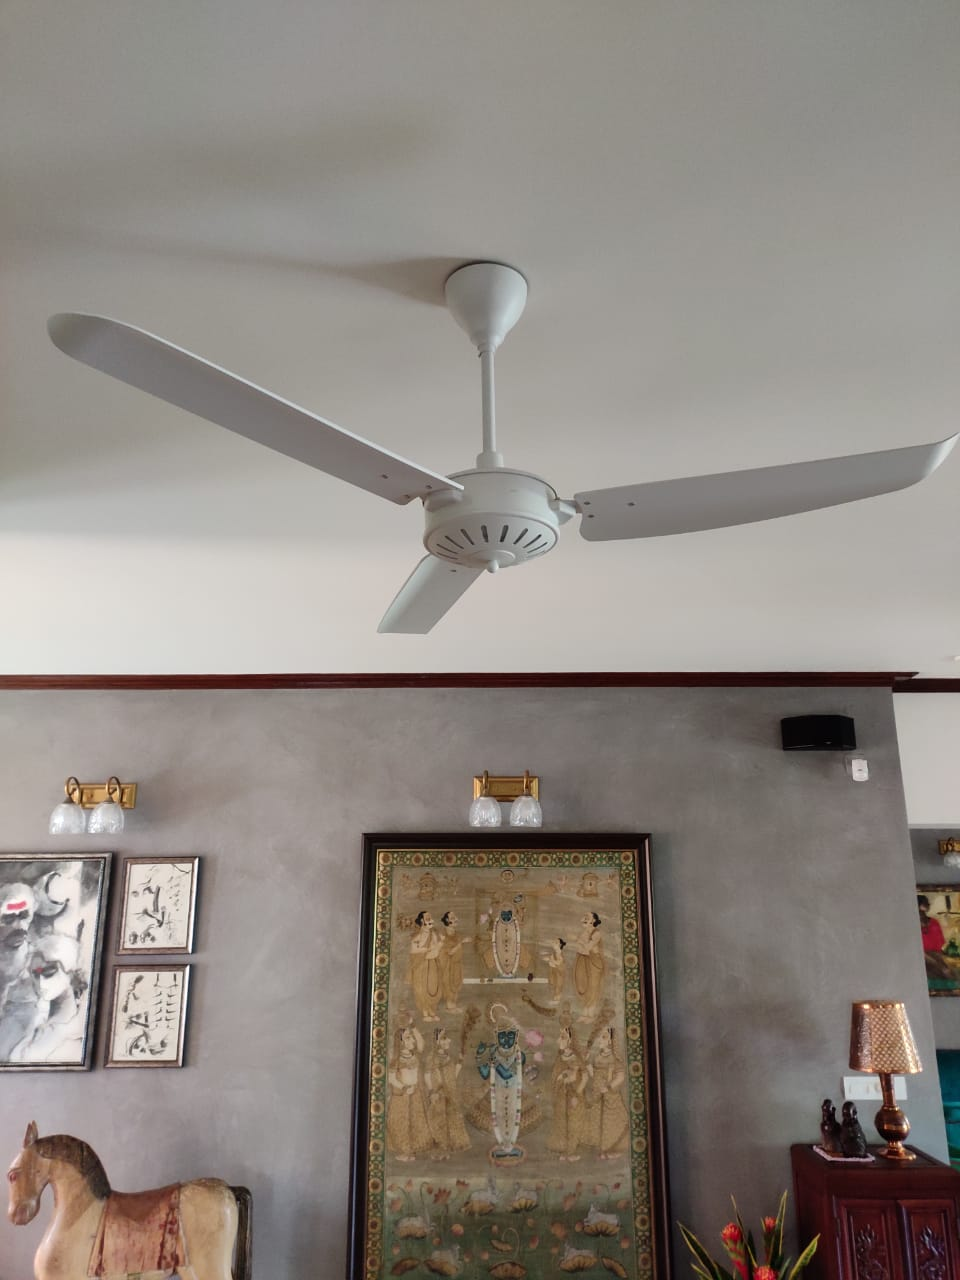 Now Personalizeyour fan in the shade of your choice-a Unique Offering from Fanzart...